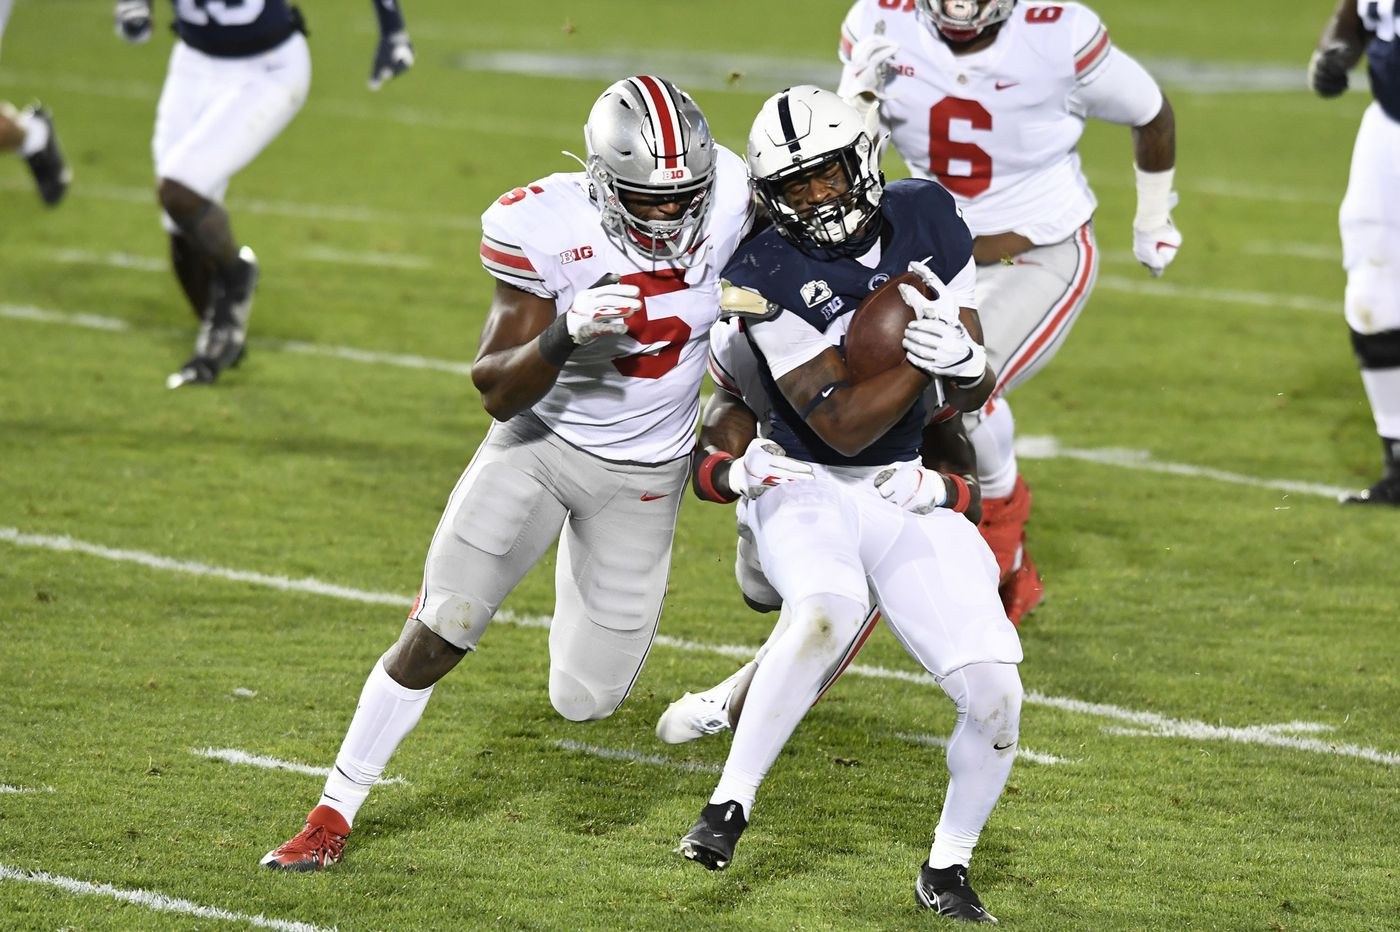 Penn State's revamped offense still trying to work out the kinks